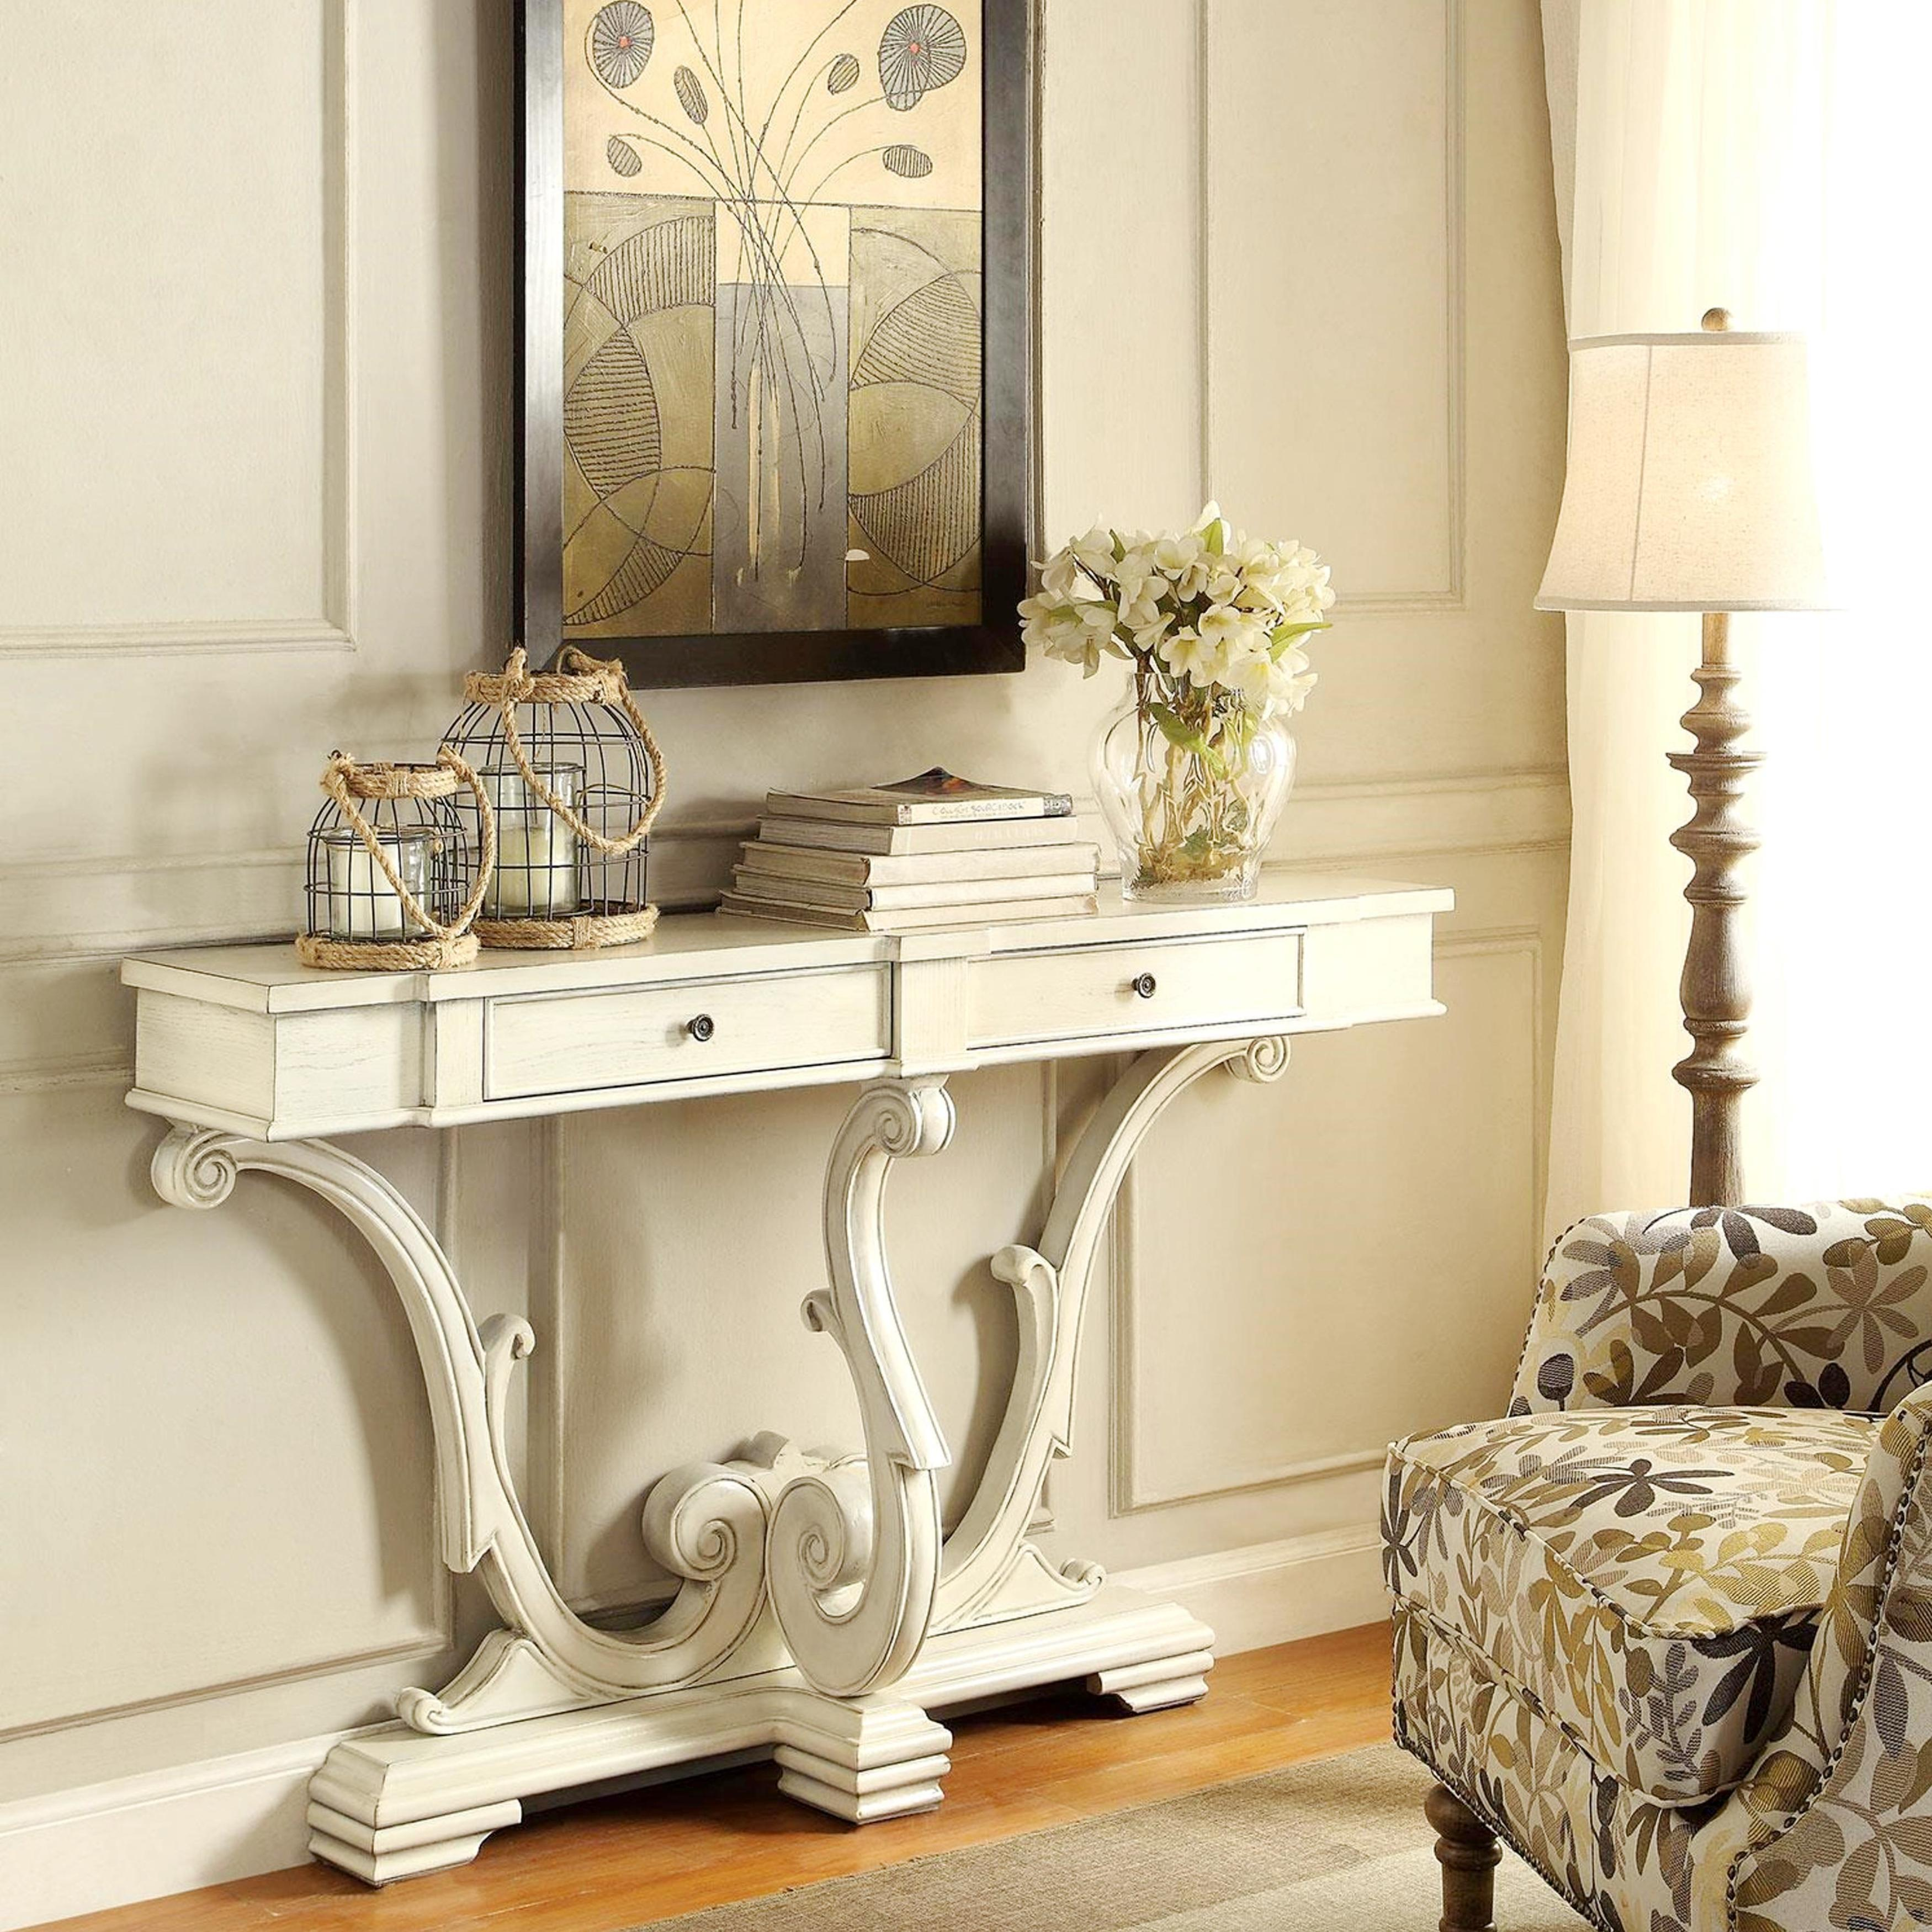 french sanctuary design antique white accent console table free shipping today glass bedside drawers lamps pottery barn flooring black and cream rug quilted runners patterns teak